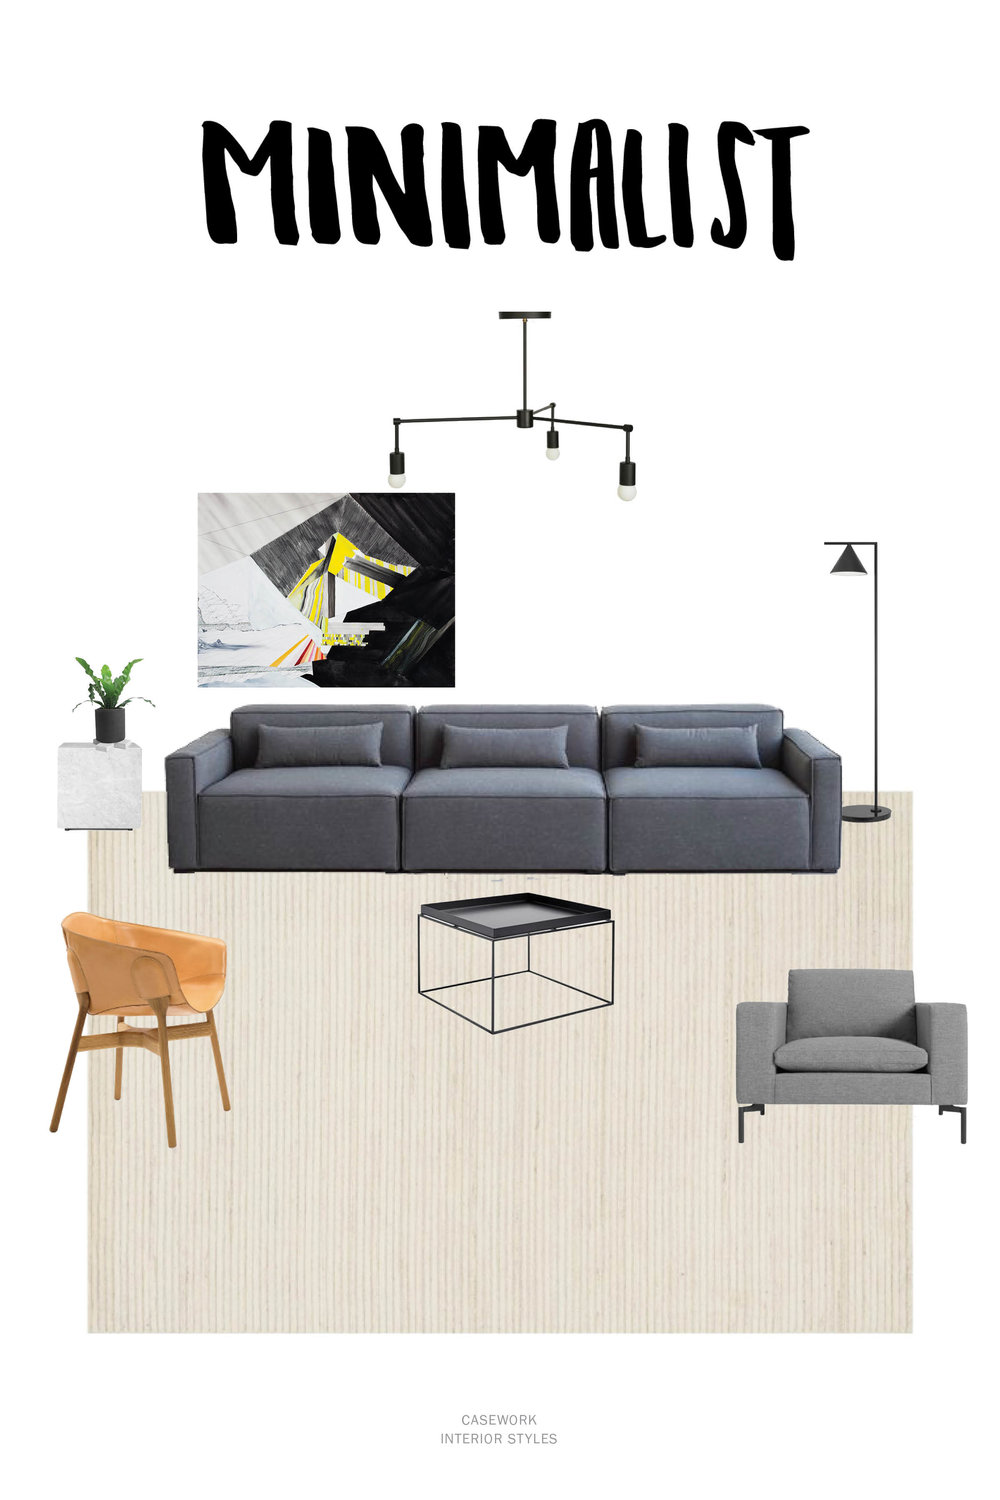 Minimalist Interior Style Resources:  Pendant  | Art |  Sofa - similar  | S ide Table  |  Floor Lamp  |  Leather Side Chair  |  Coffee Table  |  Lounge Chair  |  Rug